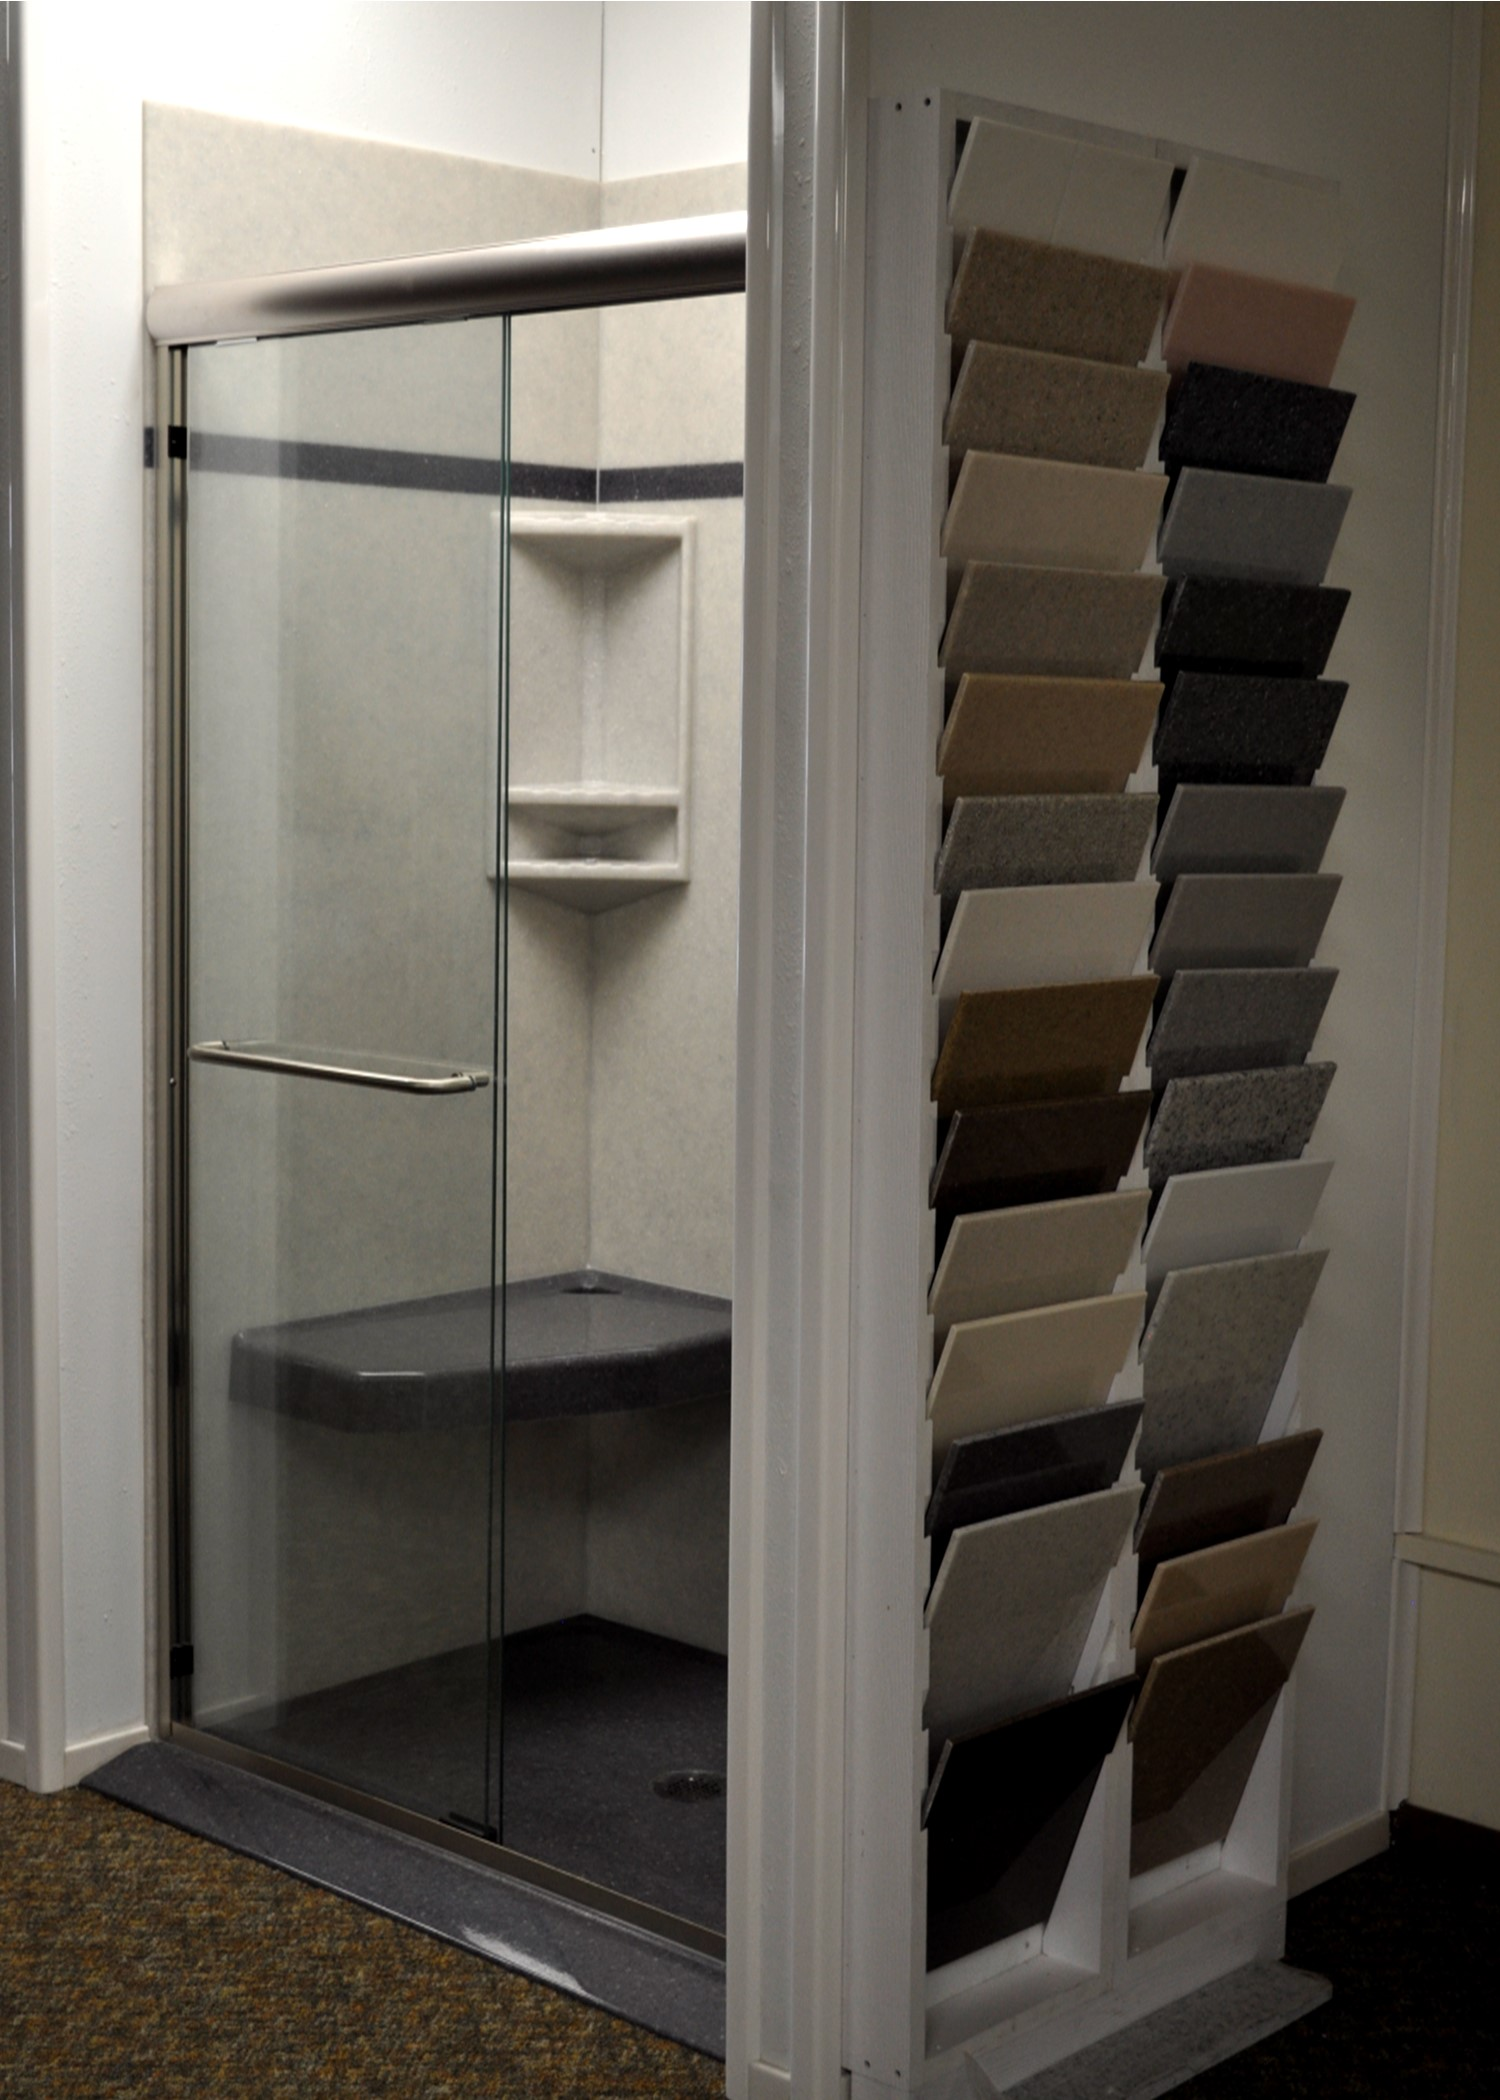 1 Onyx Shower with color samples